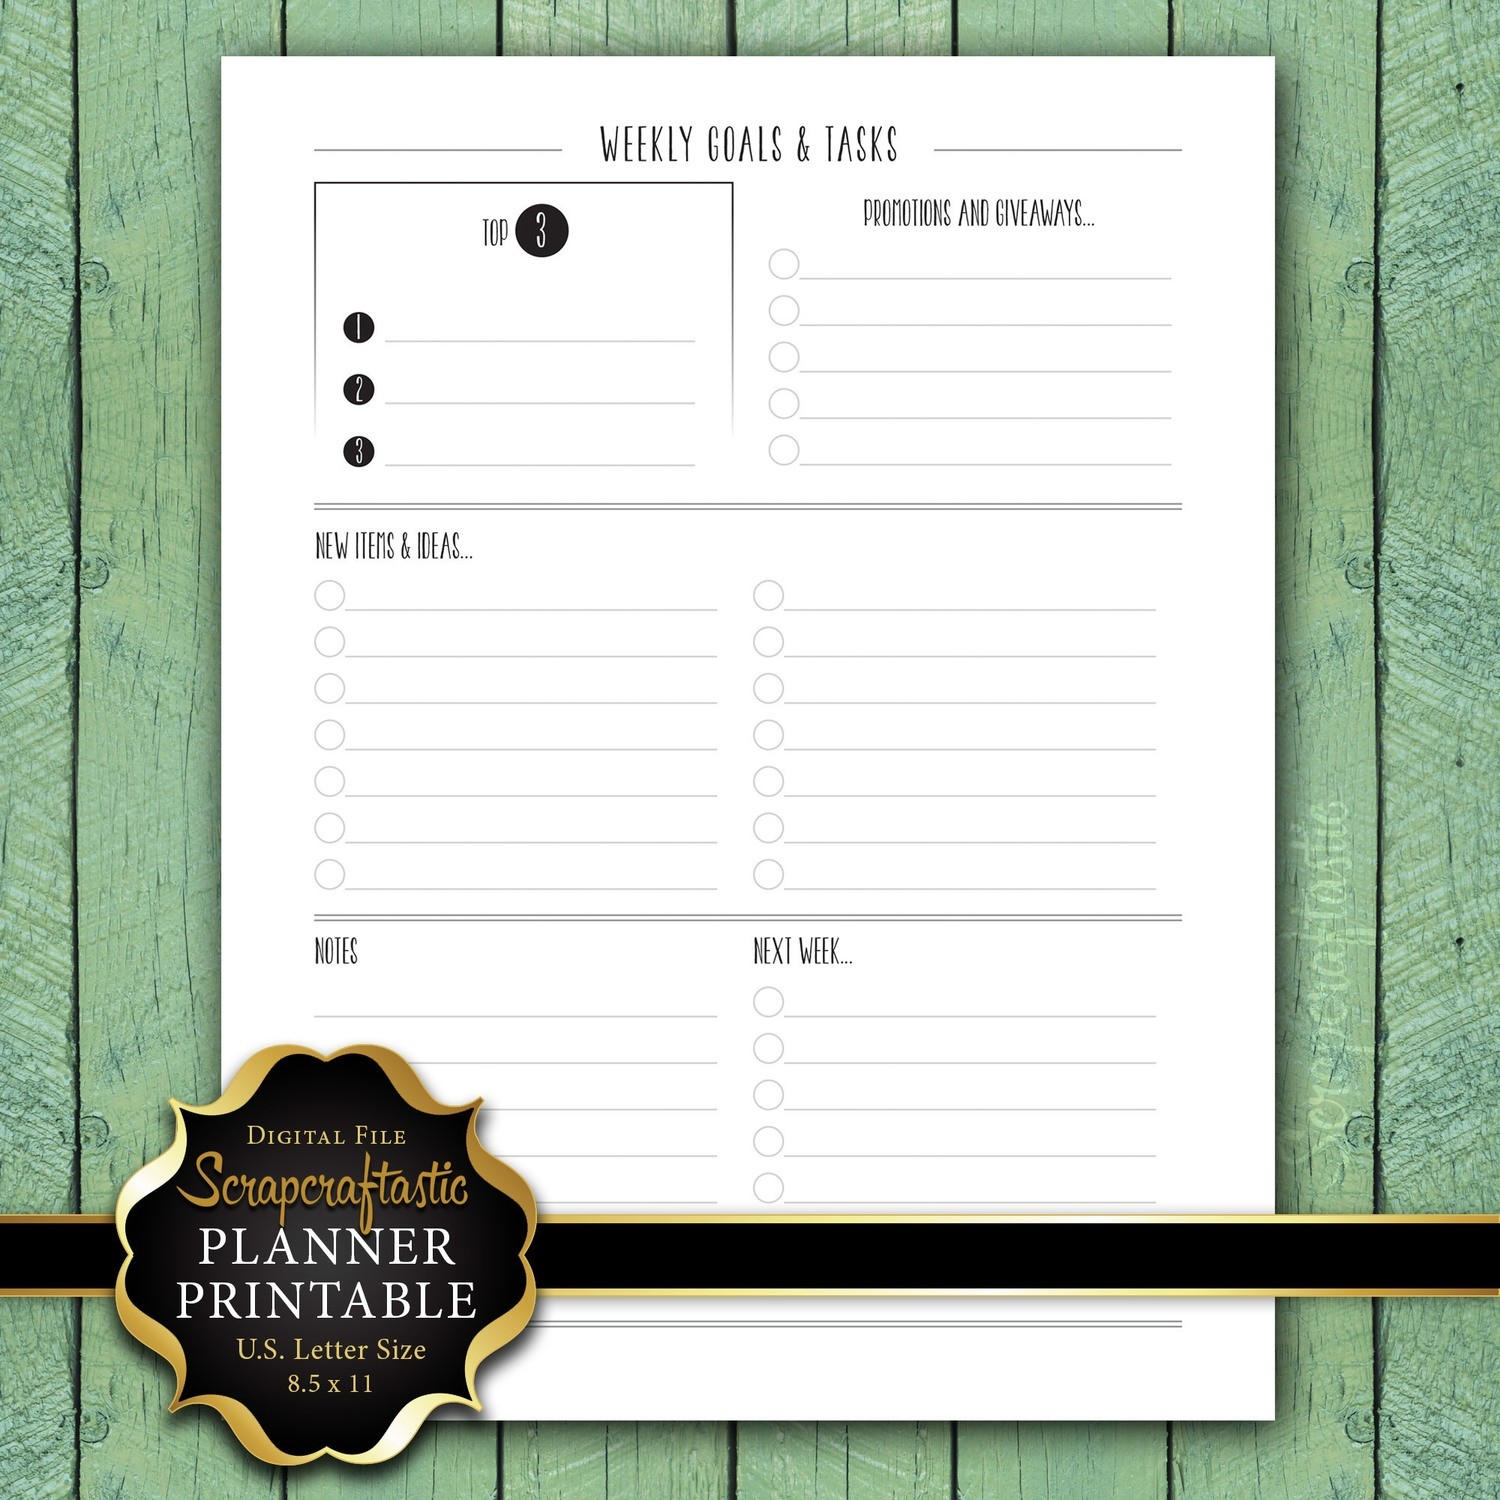 Weekly Goals & Tasks Letter Size Planner Printable Insert